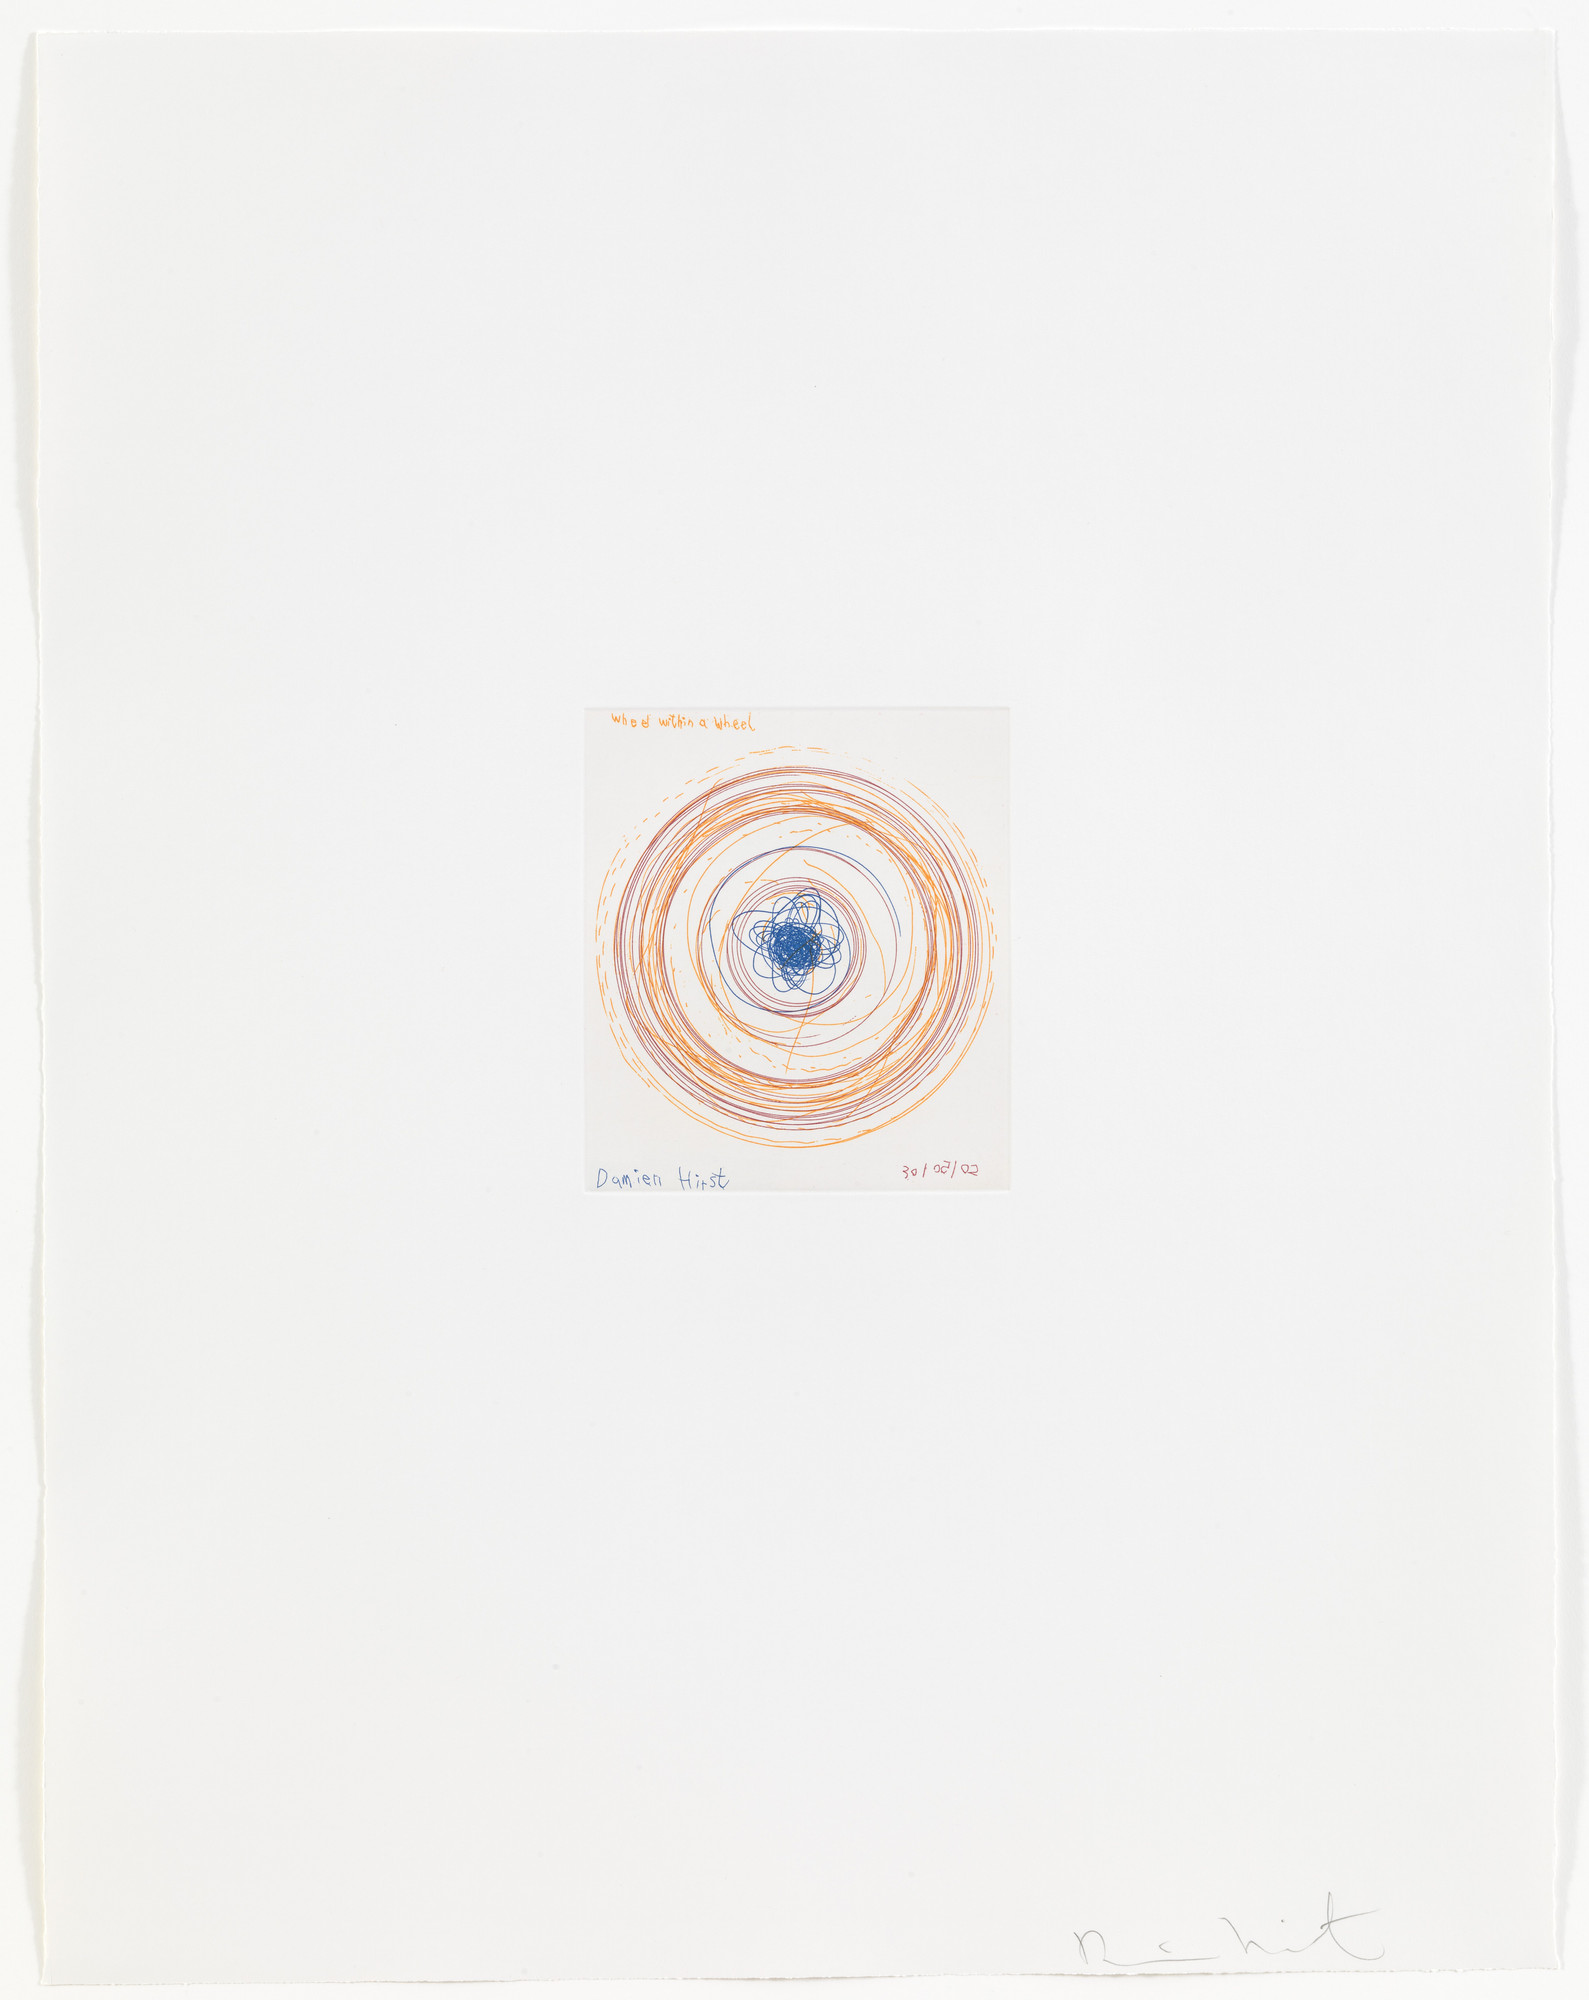 Damien Hirst. Wheel within a wheel from In a Spin, the Action of the World on Things, Volume 1. 2002